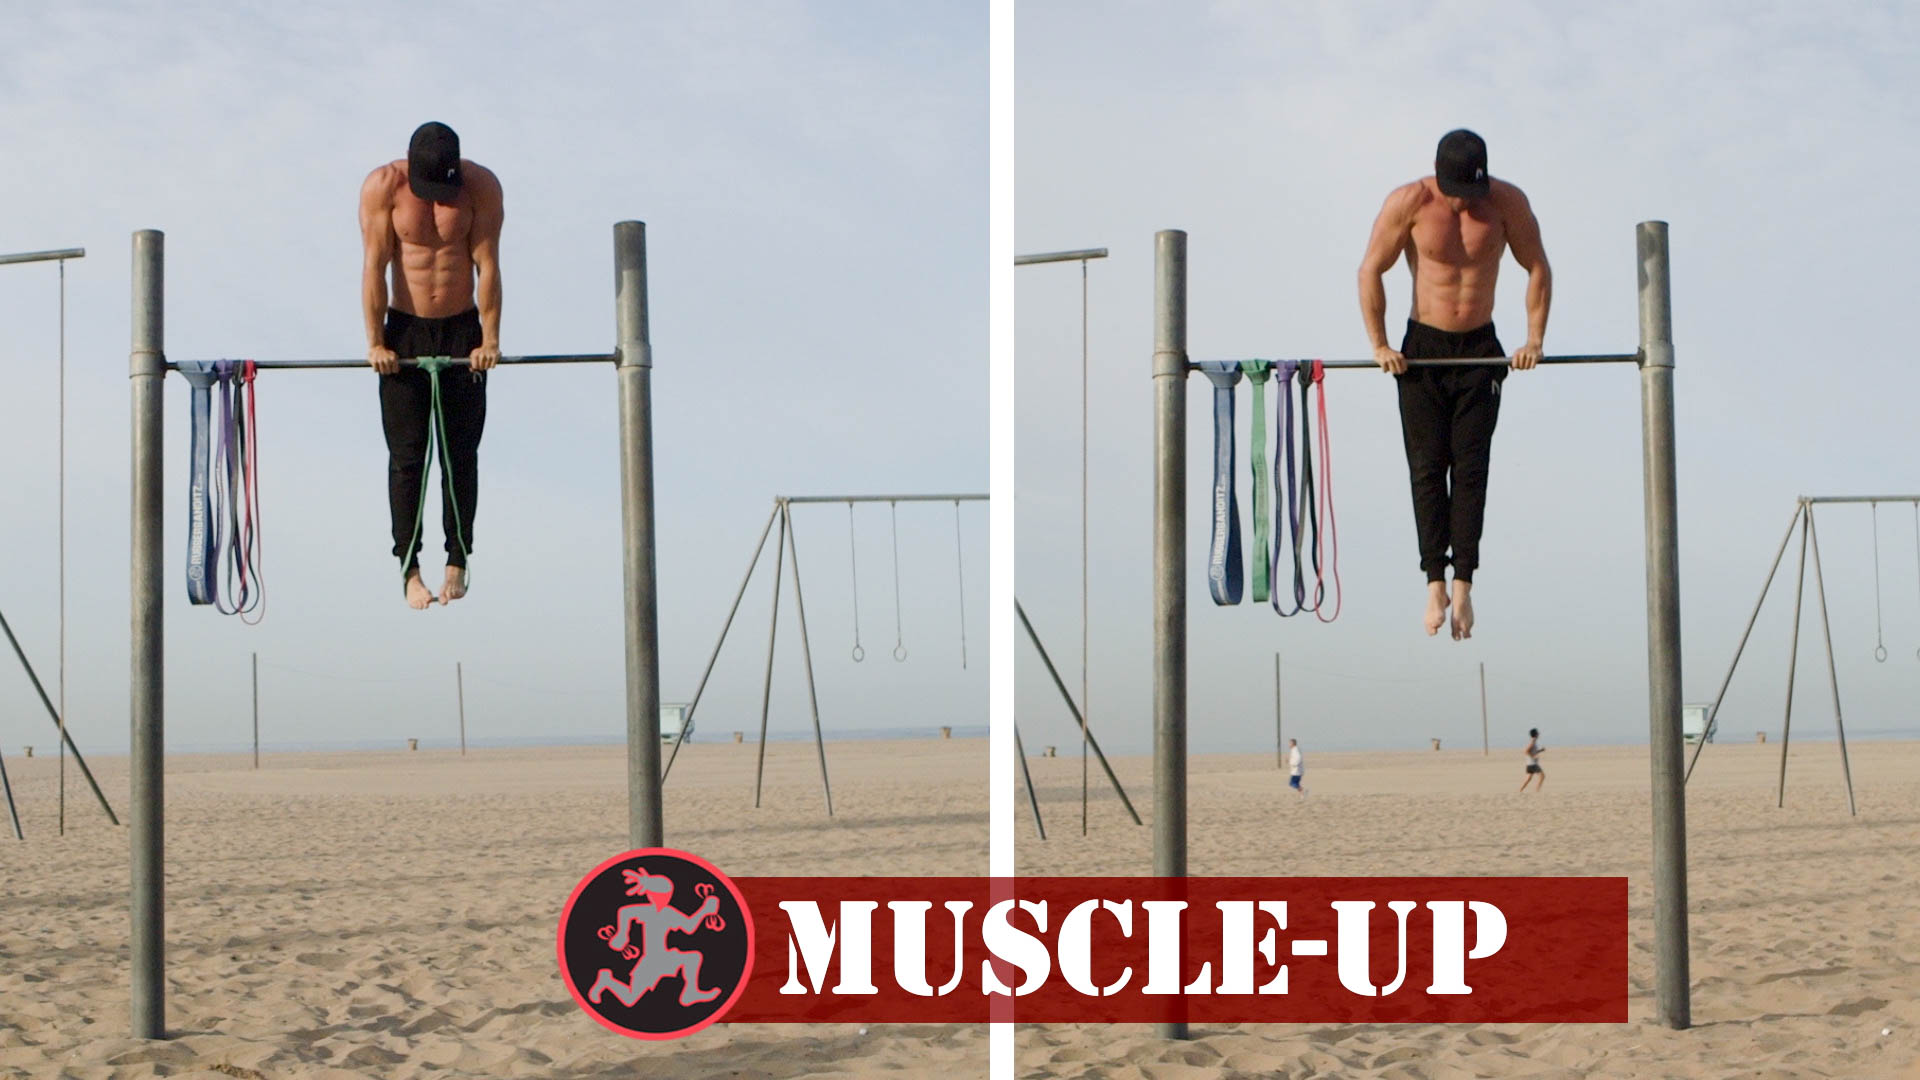 Calisthenics Bodyweight Training Bands for Muscle Ups